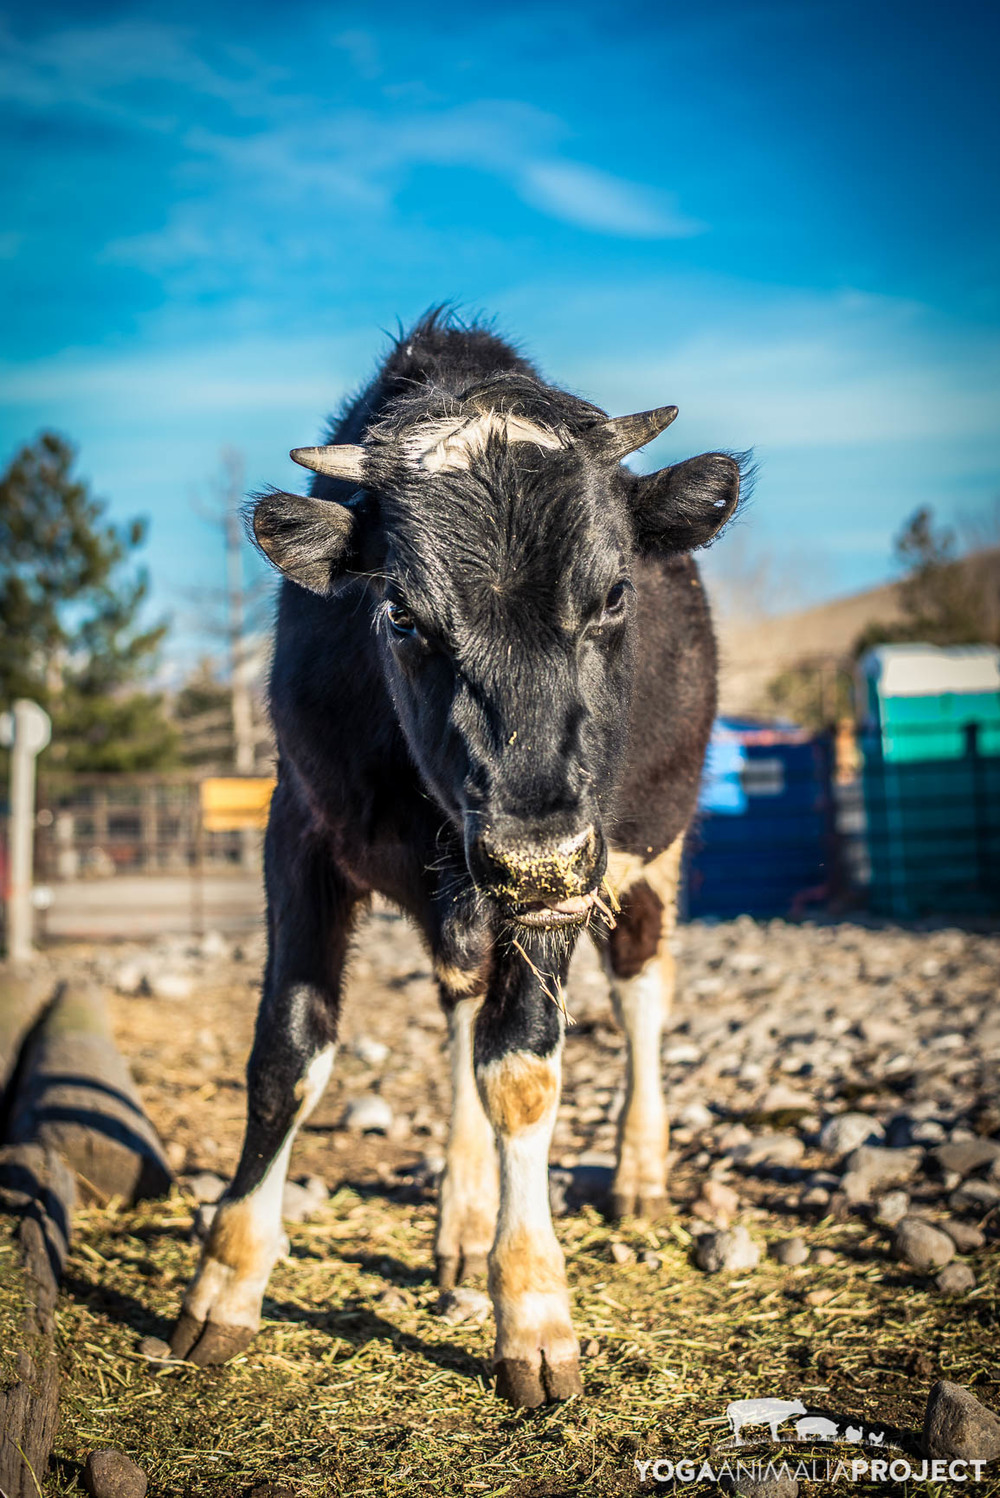 Grimm, Ching Farm Rescue & Sanctuary, Herriman, Utah